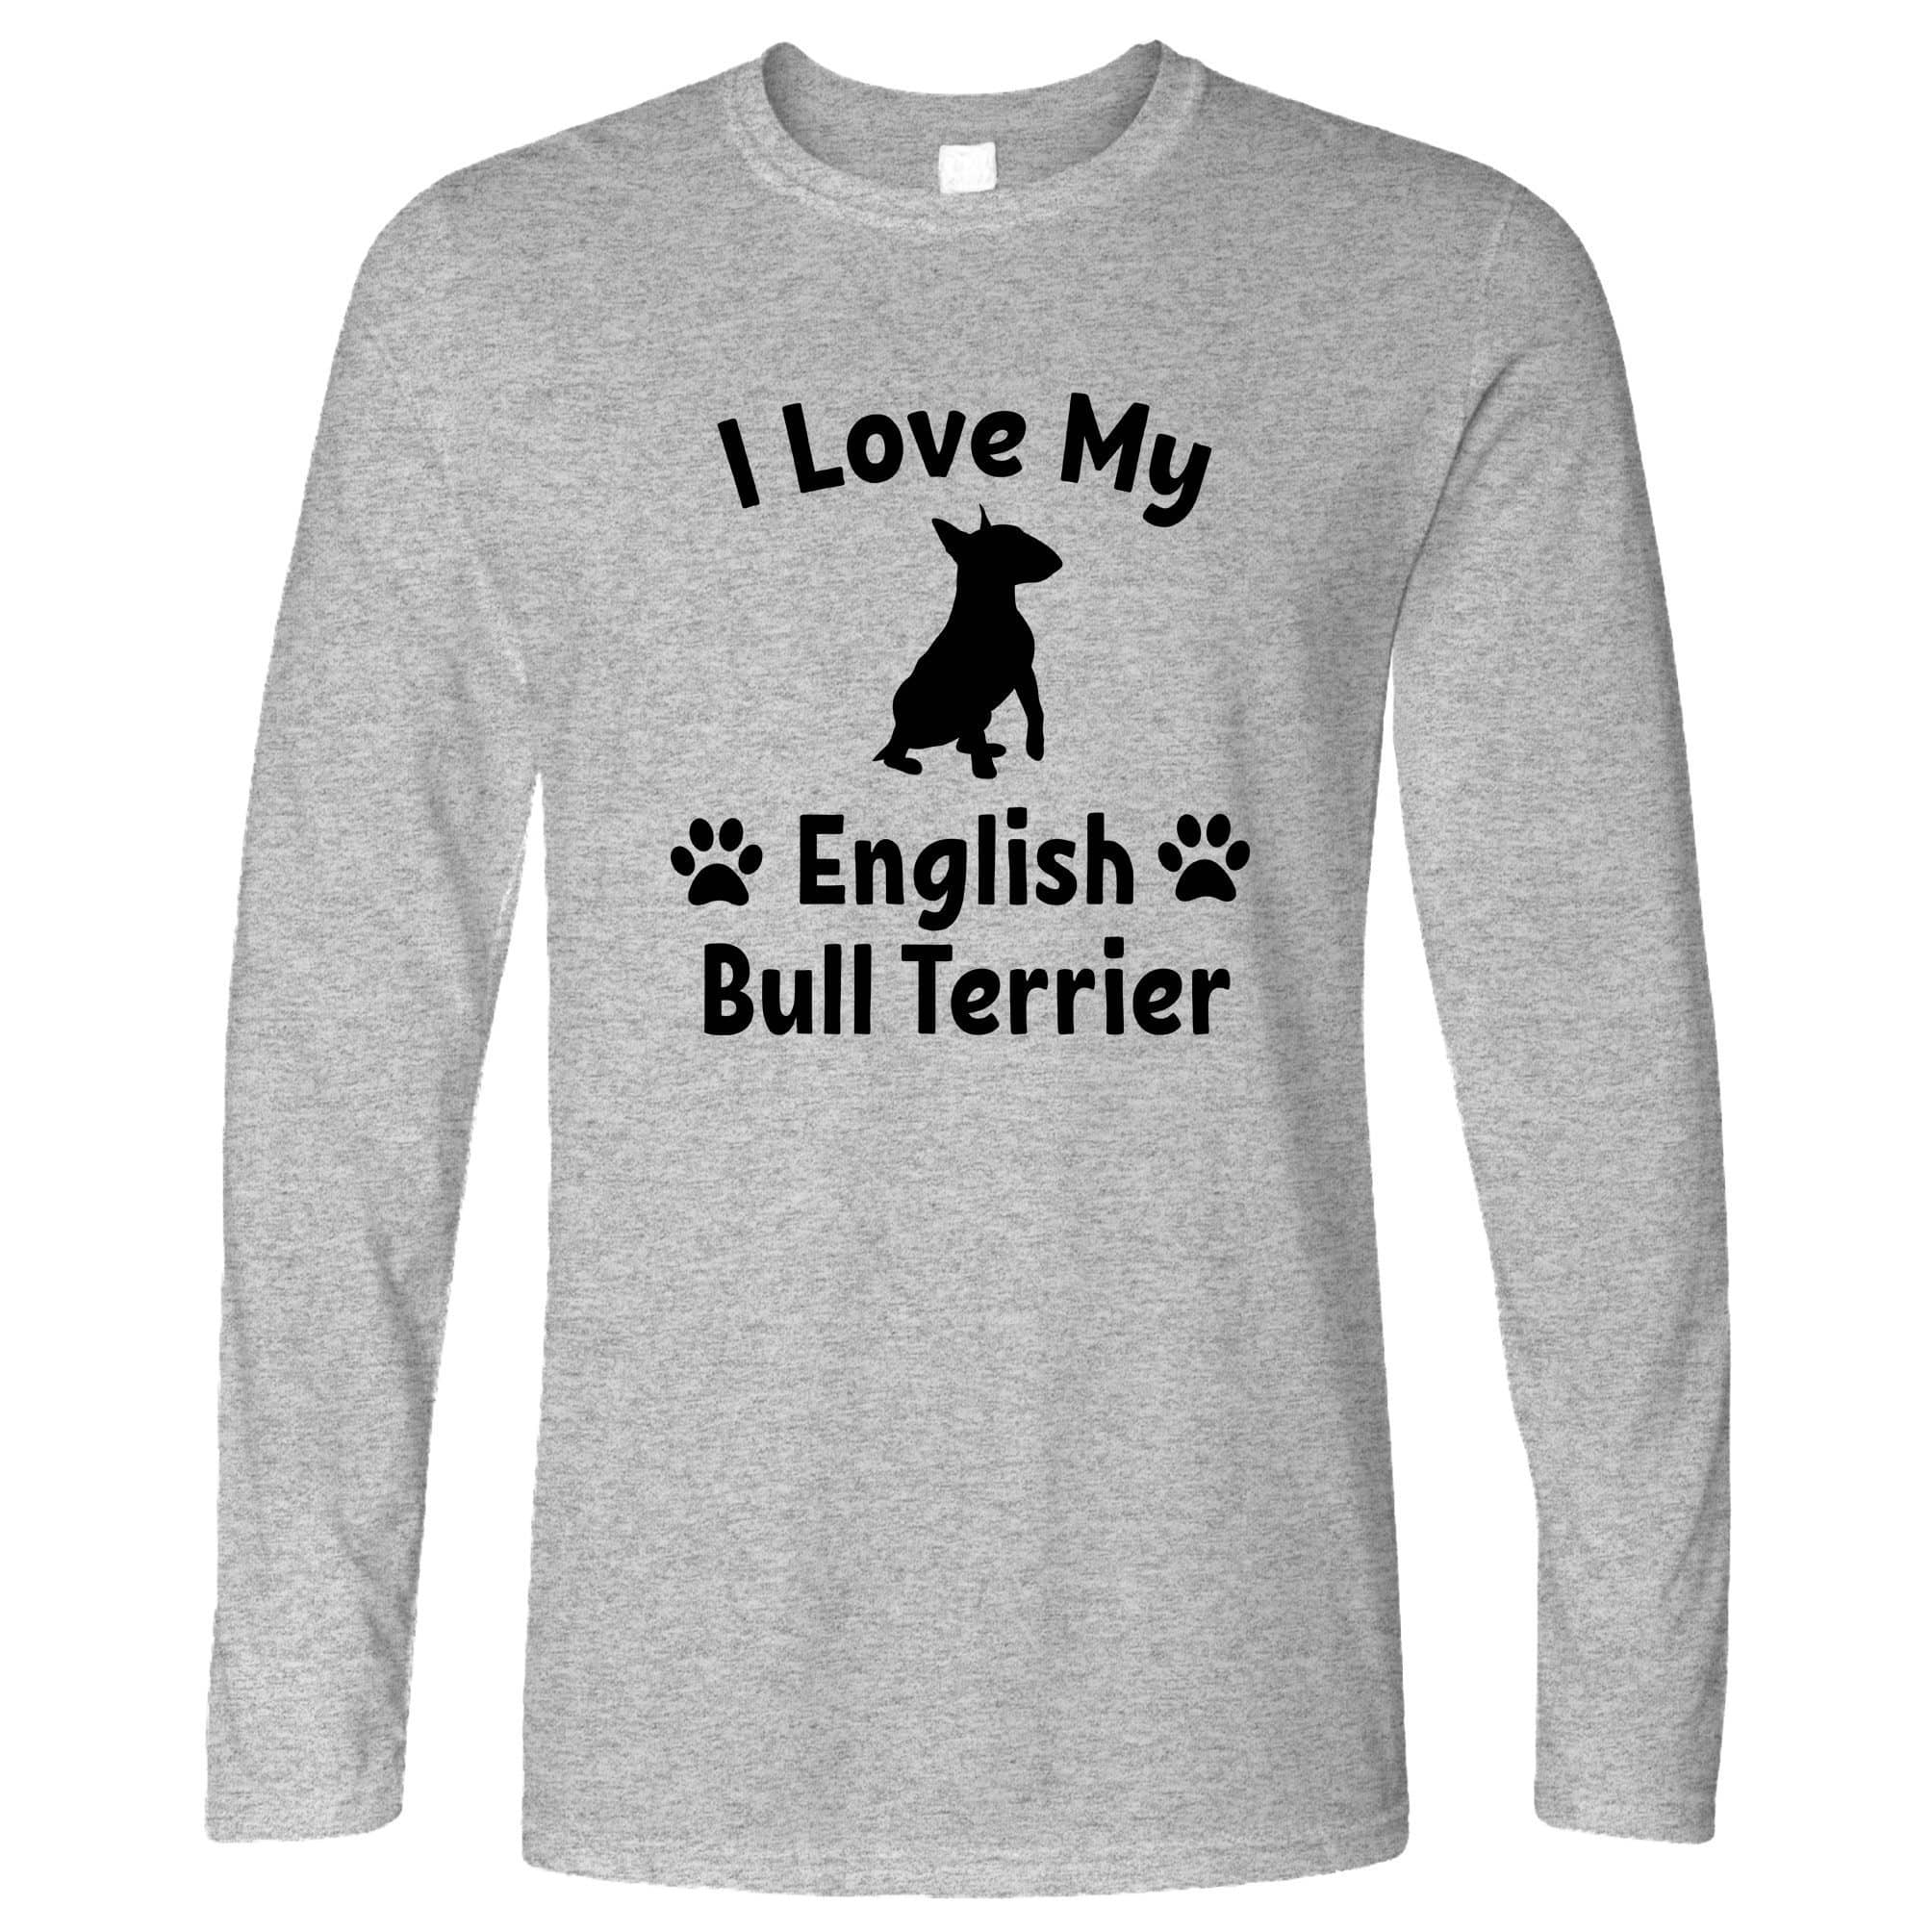 Dog Owner Long Sleeve I Love My English Bull Terrier T-Shirt